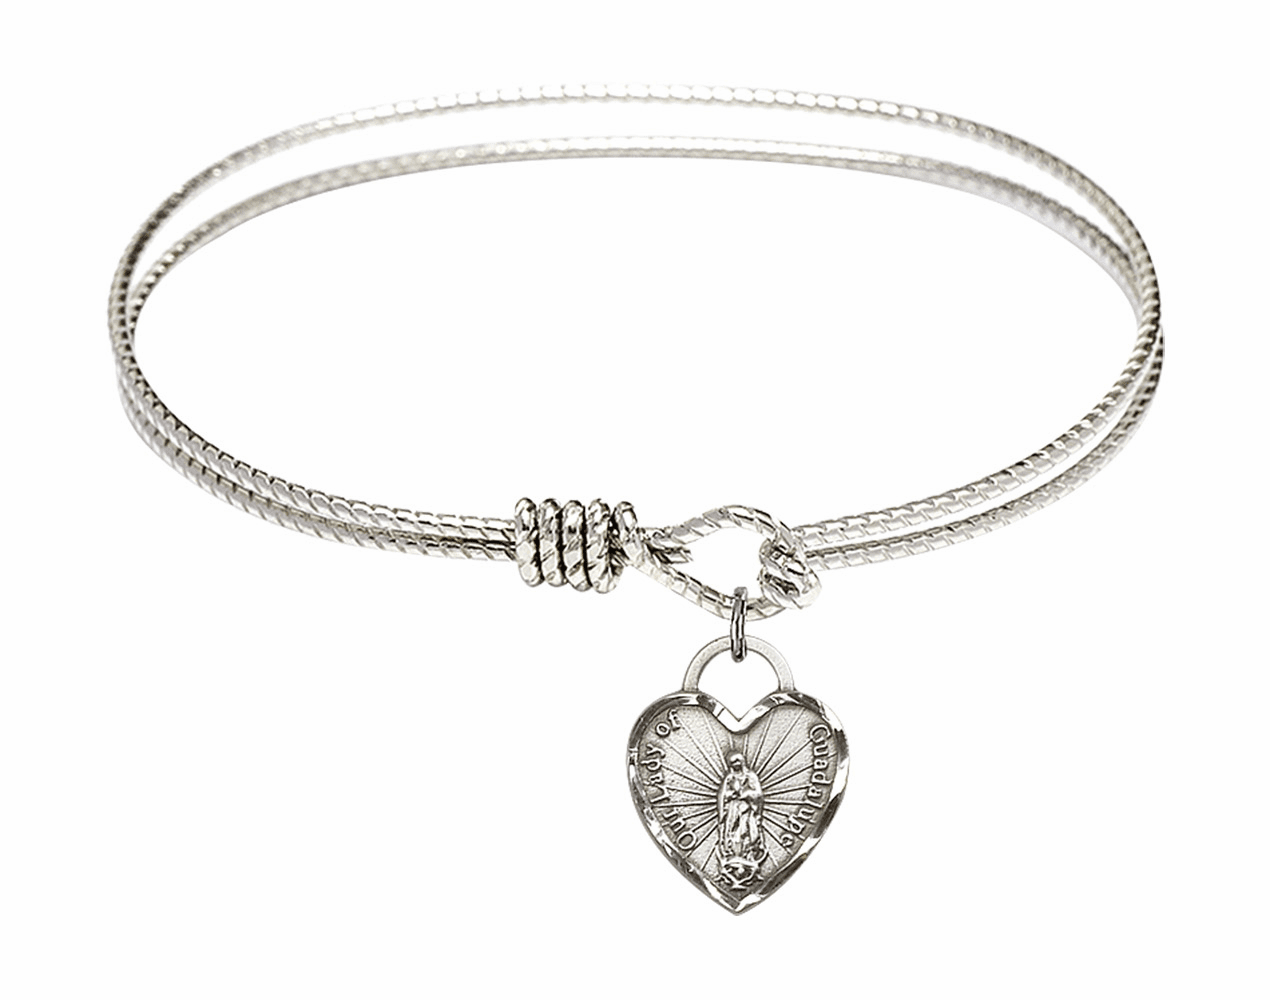 Round Twist Eye Hook Bangle Bracelet w/Our Lady of Guadalupe Heart Sterling Silver Charm by Bliss Mfg